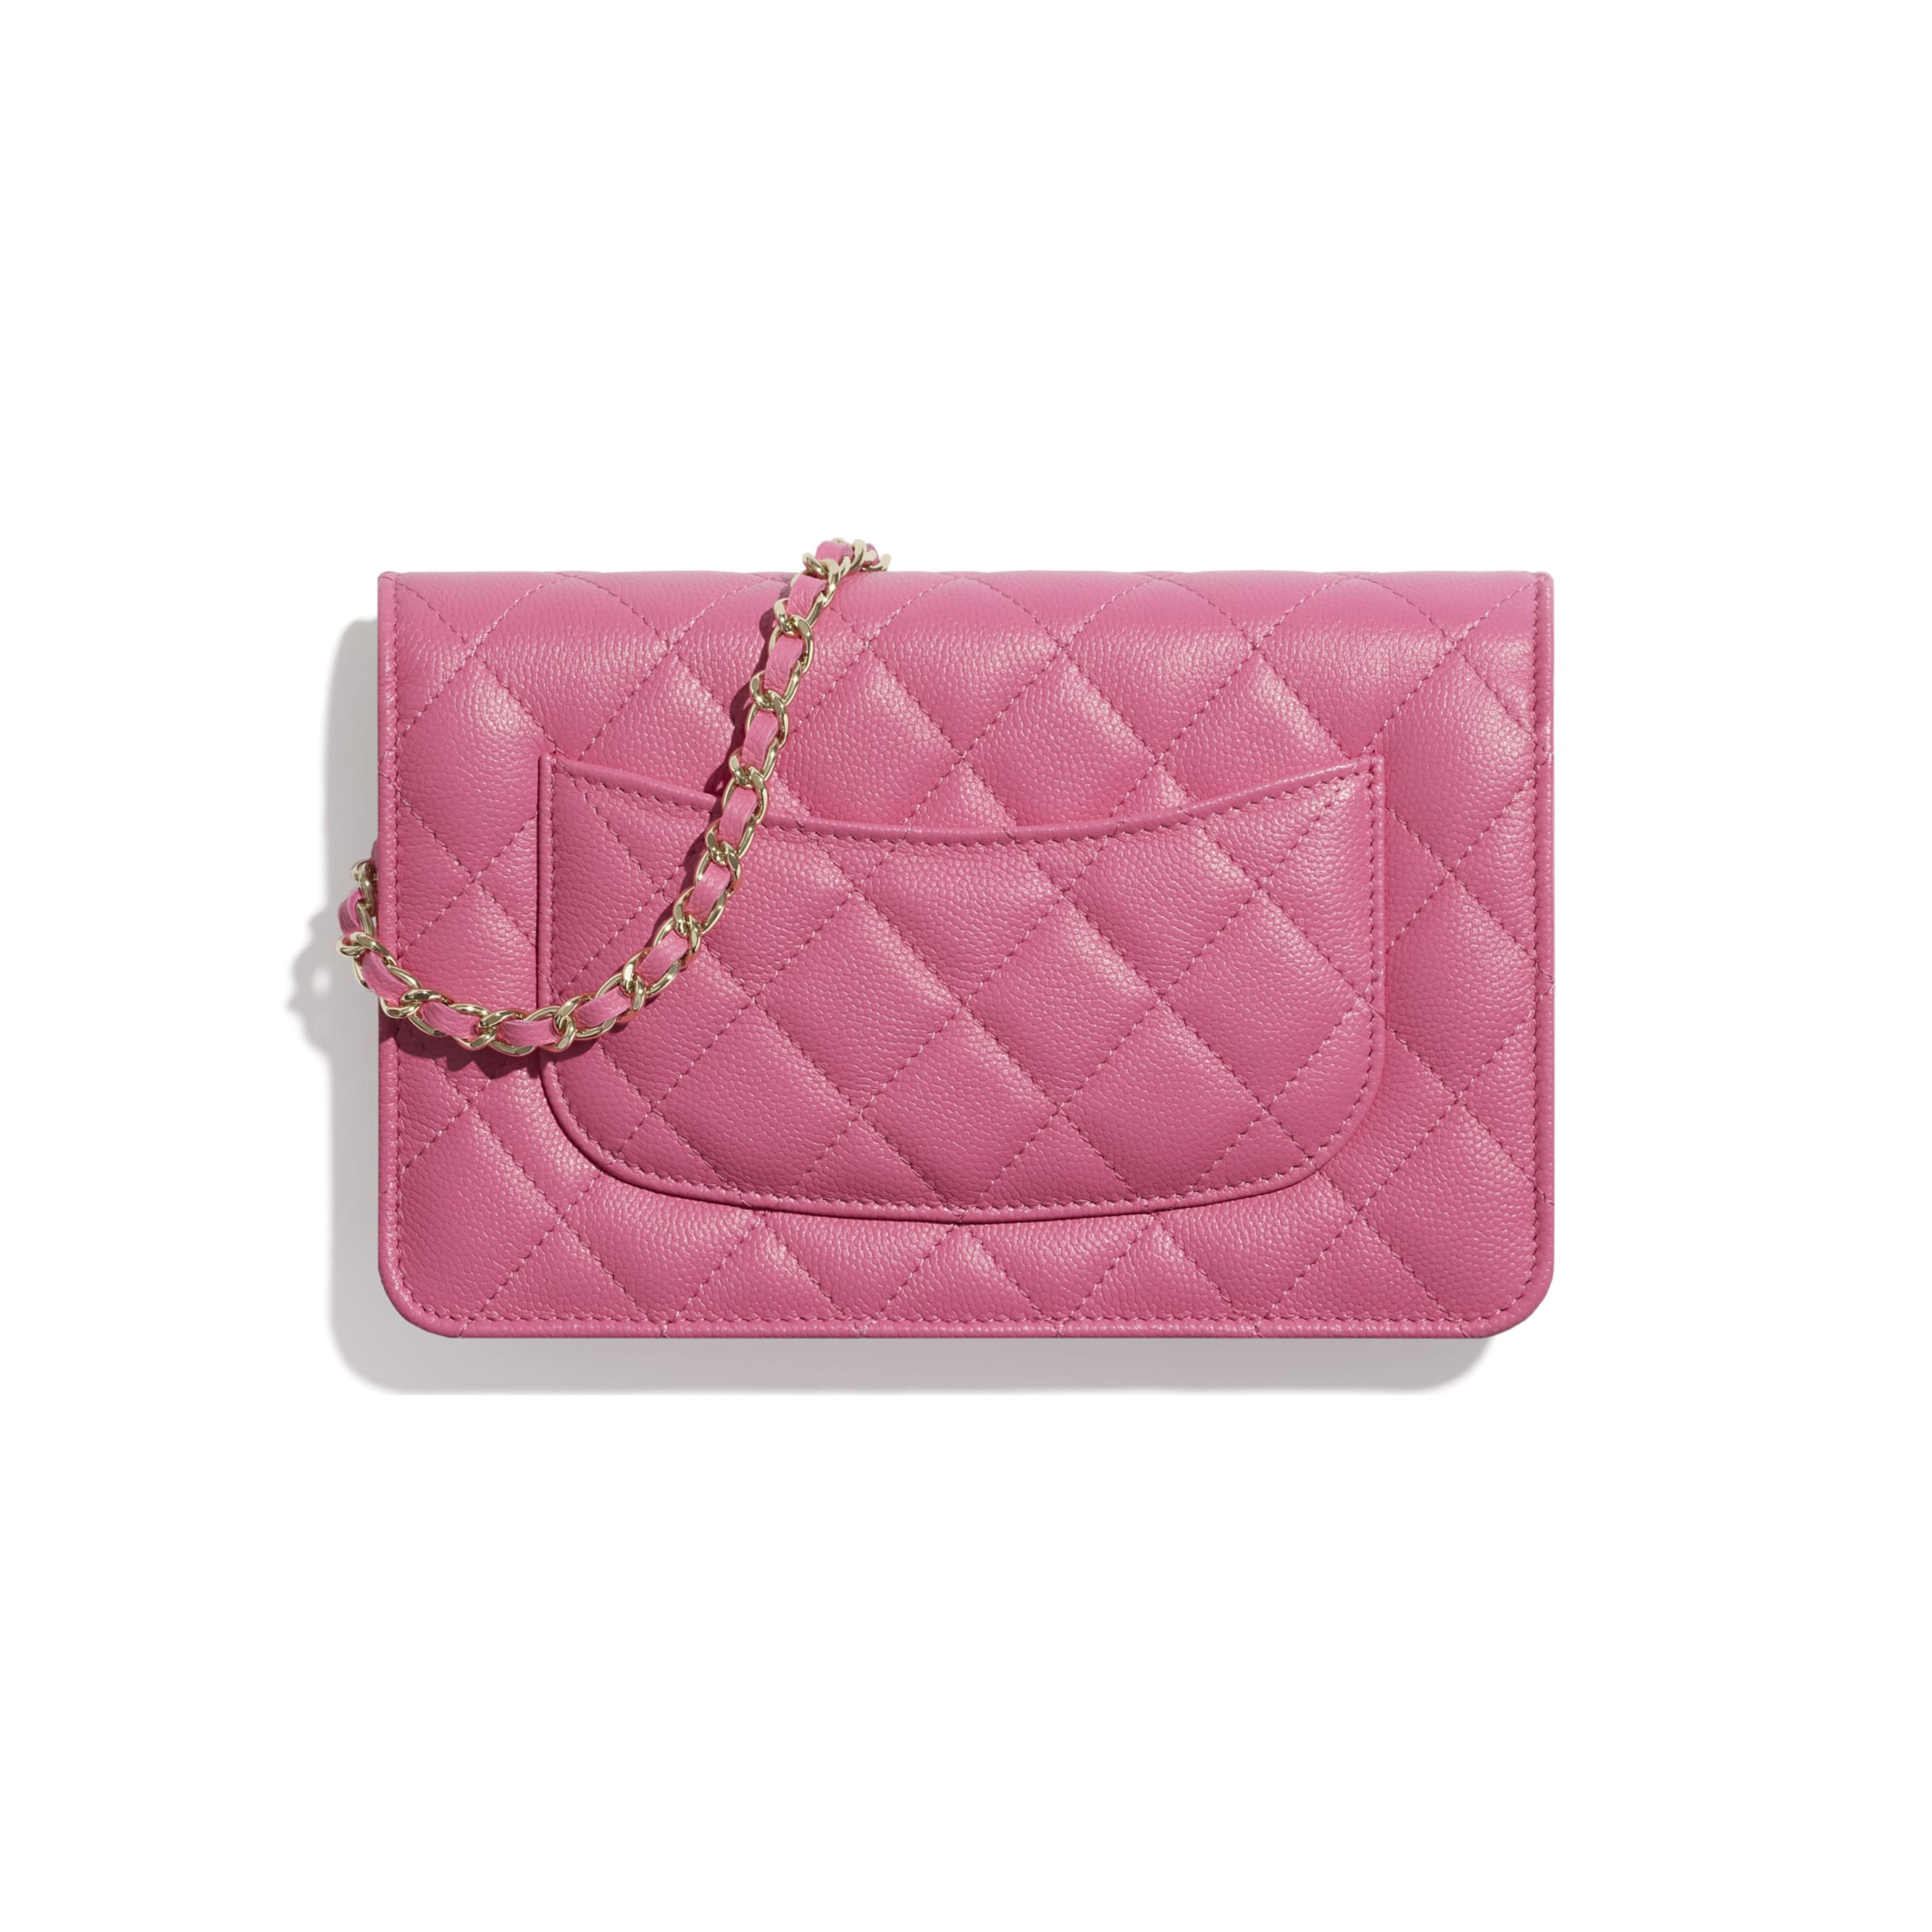 Wallet On Chain - Pink - Shiny Grained Calfskin, Gold-Tone & Lacquered Metal  - CHANEL - Alternative view - see standard sized version